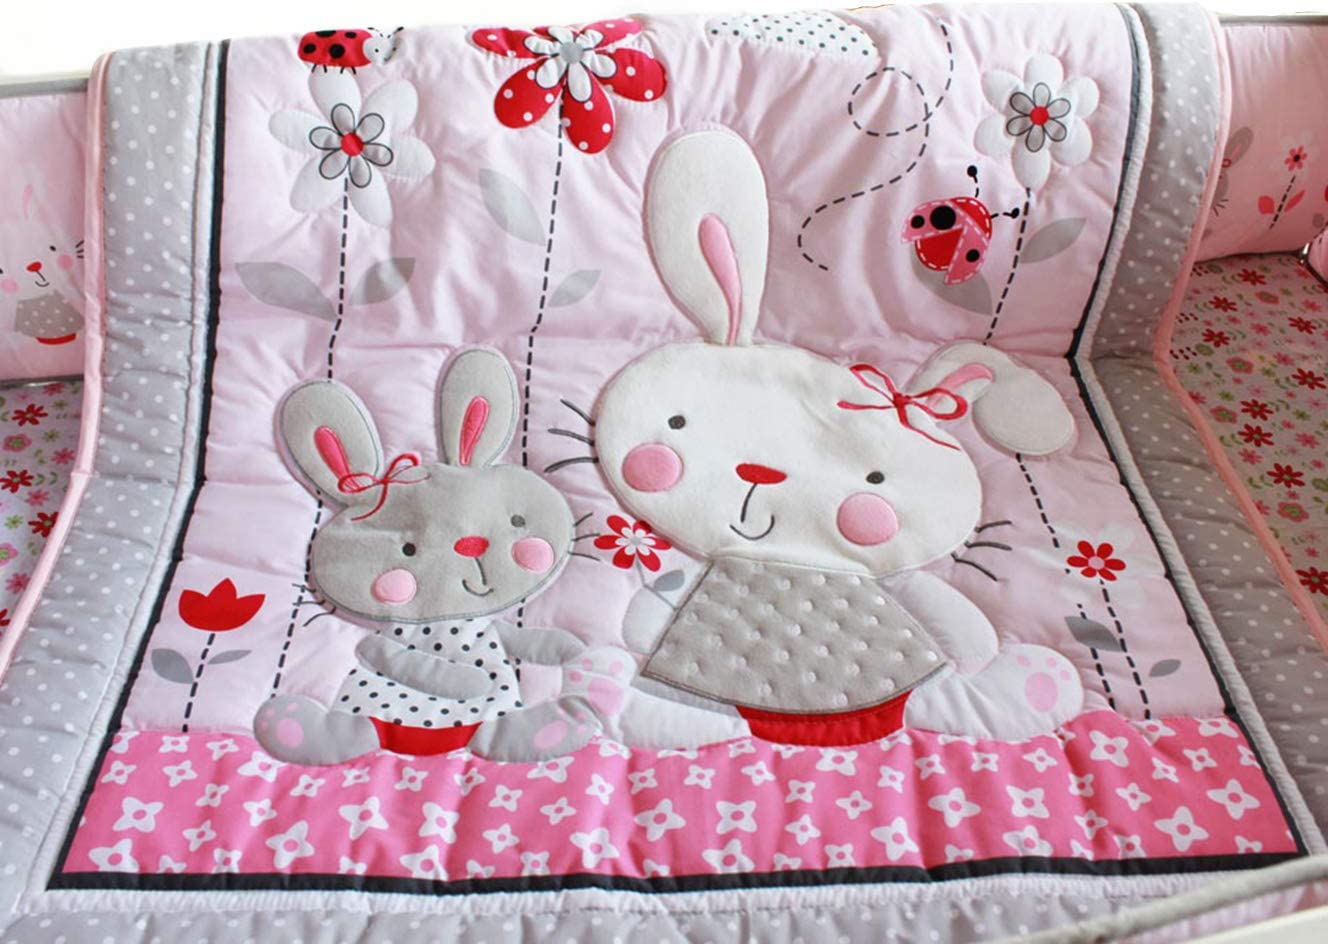 USTIDE Cot Bedding Set for Girls,Pink Owl Floral Patterned,Baby Nursery Bedding with Bumpers 100/% Breathable Cotton